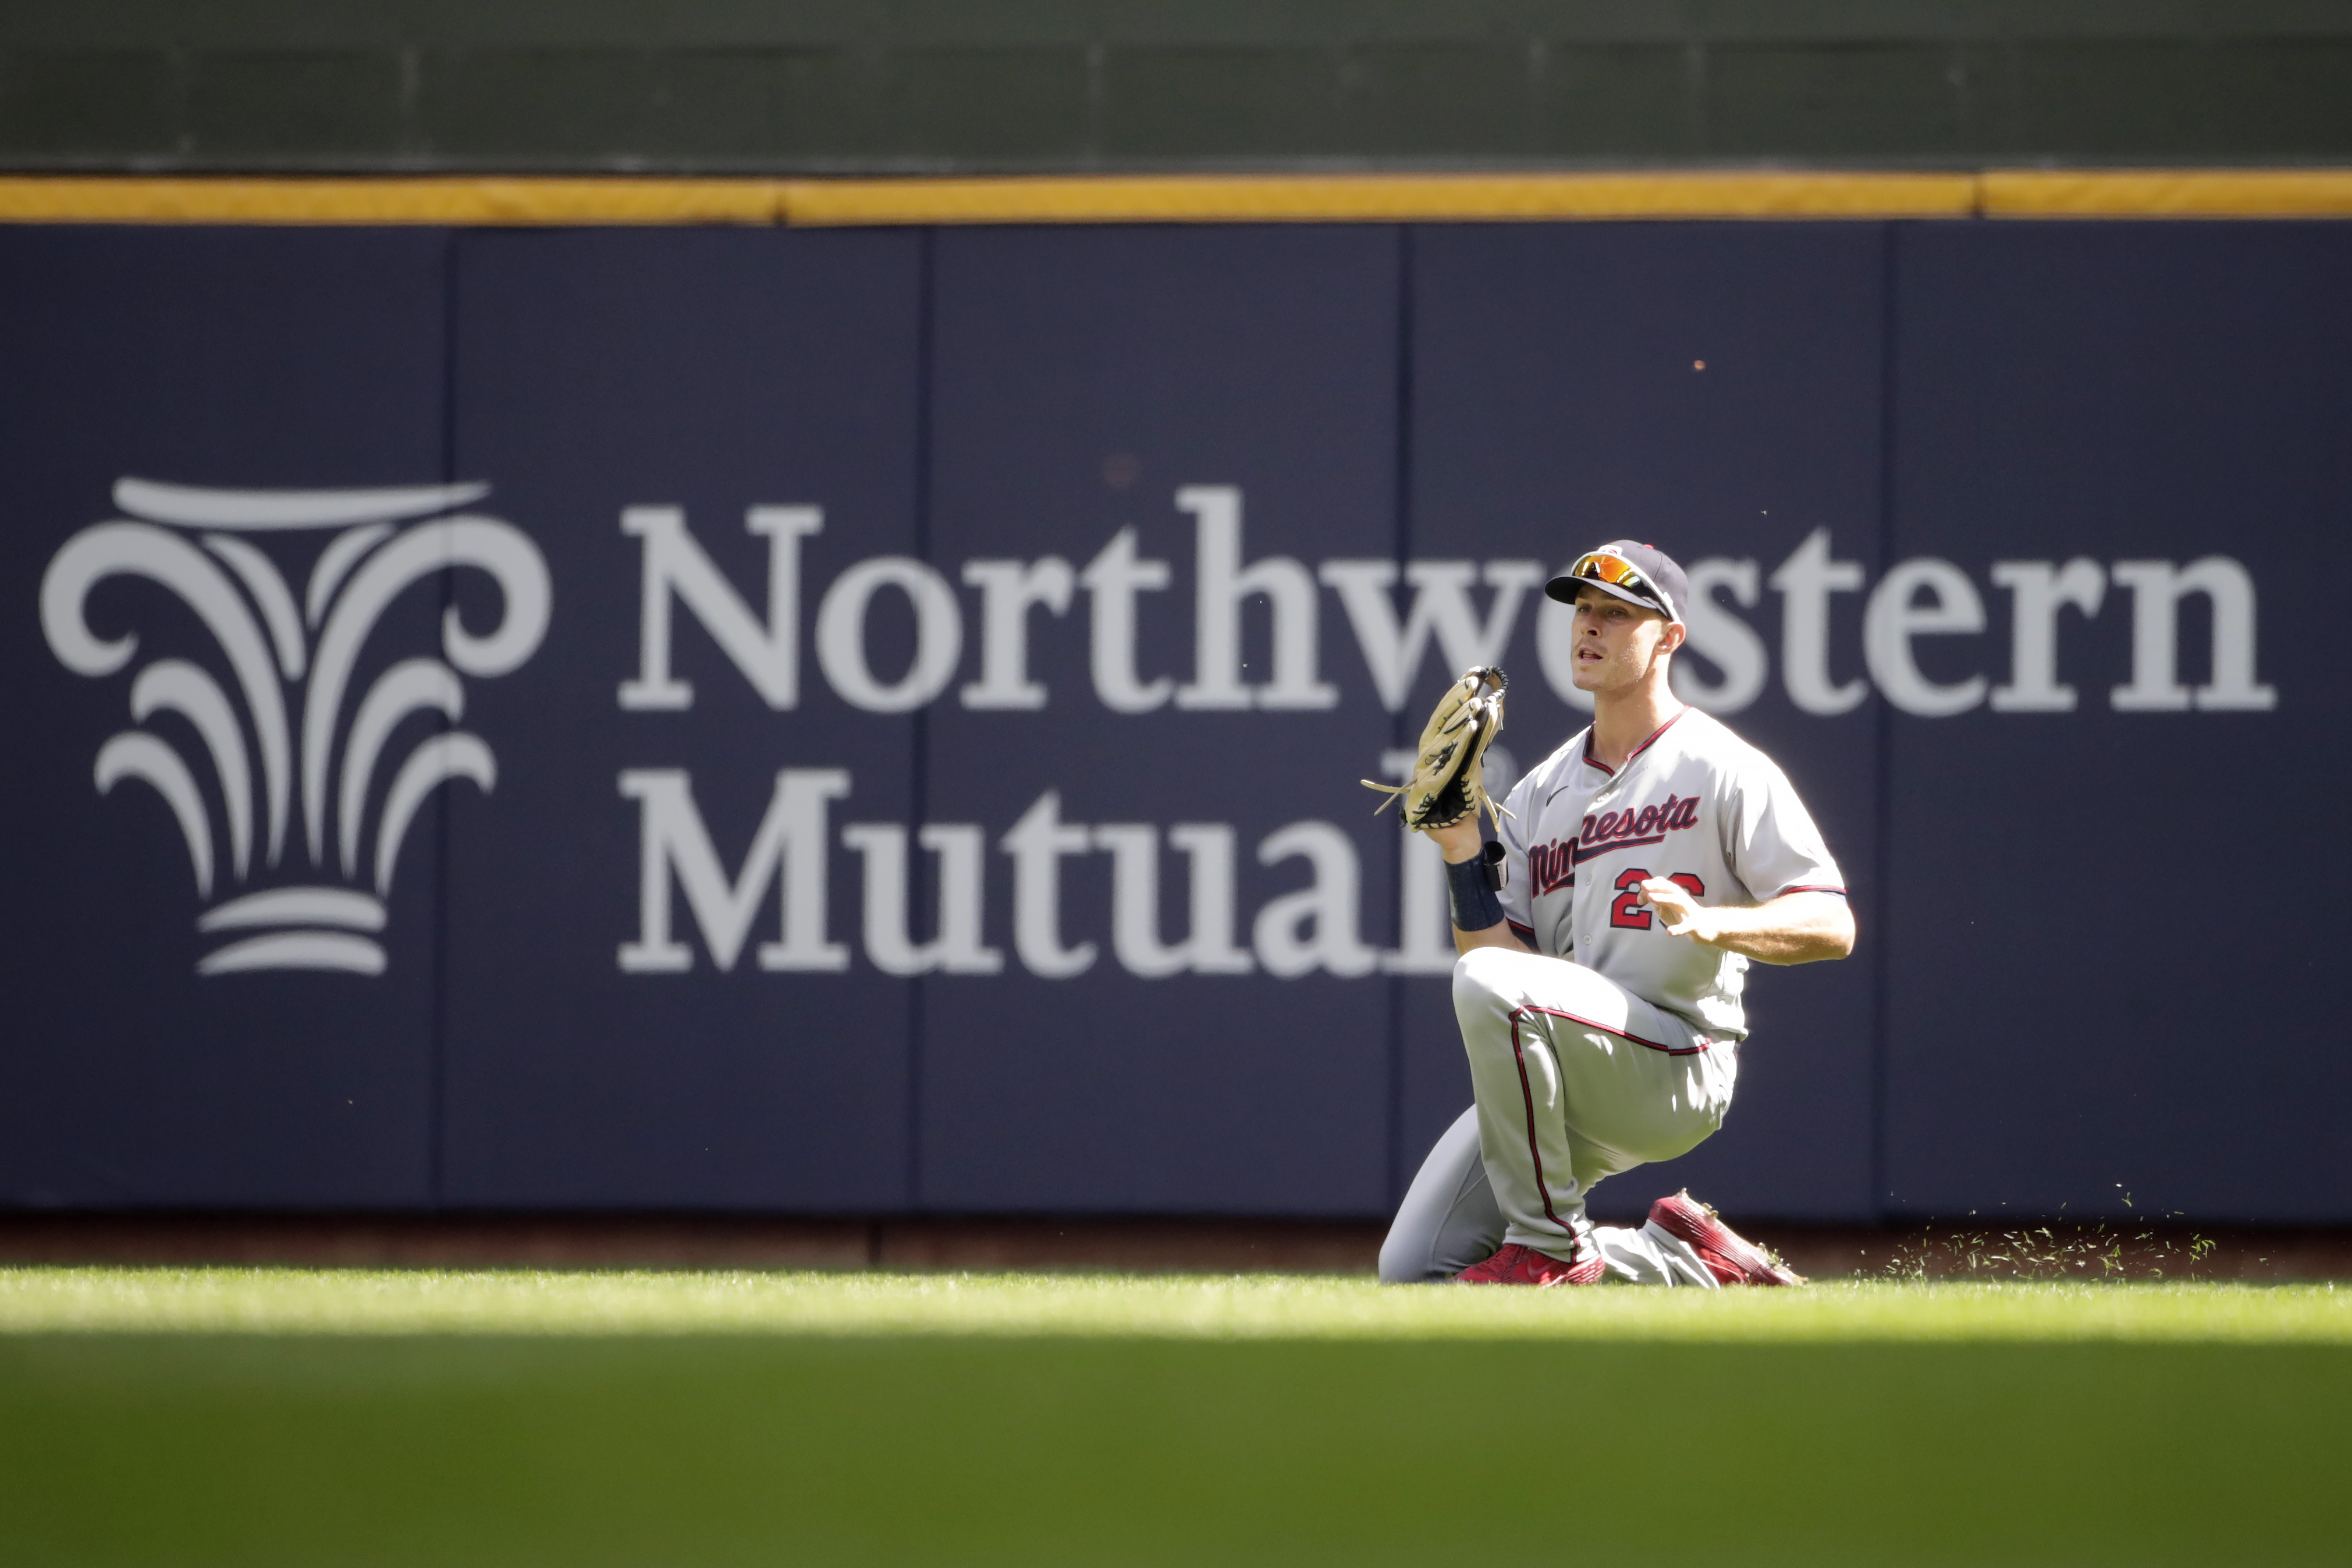 Twins outfielder Max Kepler went to a knee to make a catch during the third inning against the Brewers on Sunday.